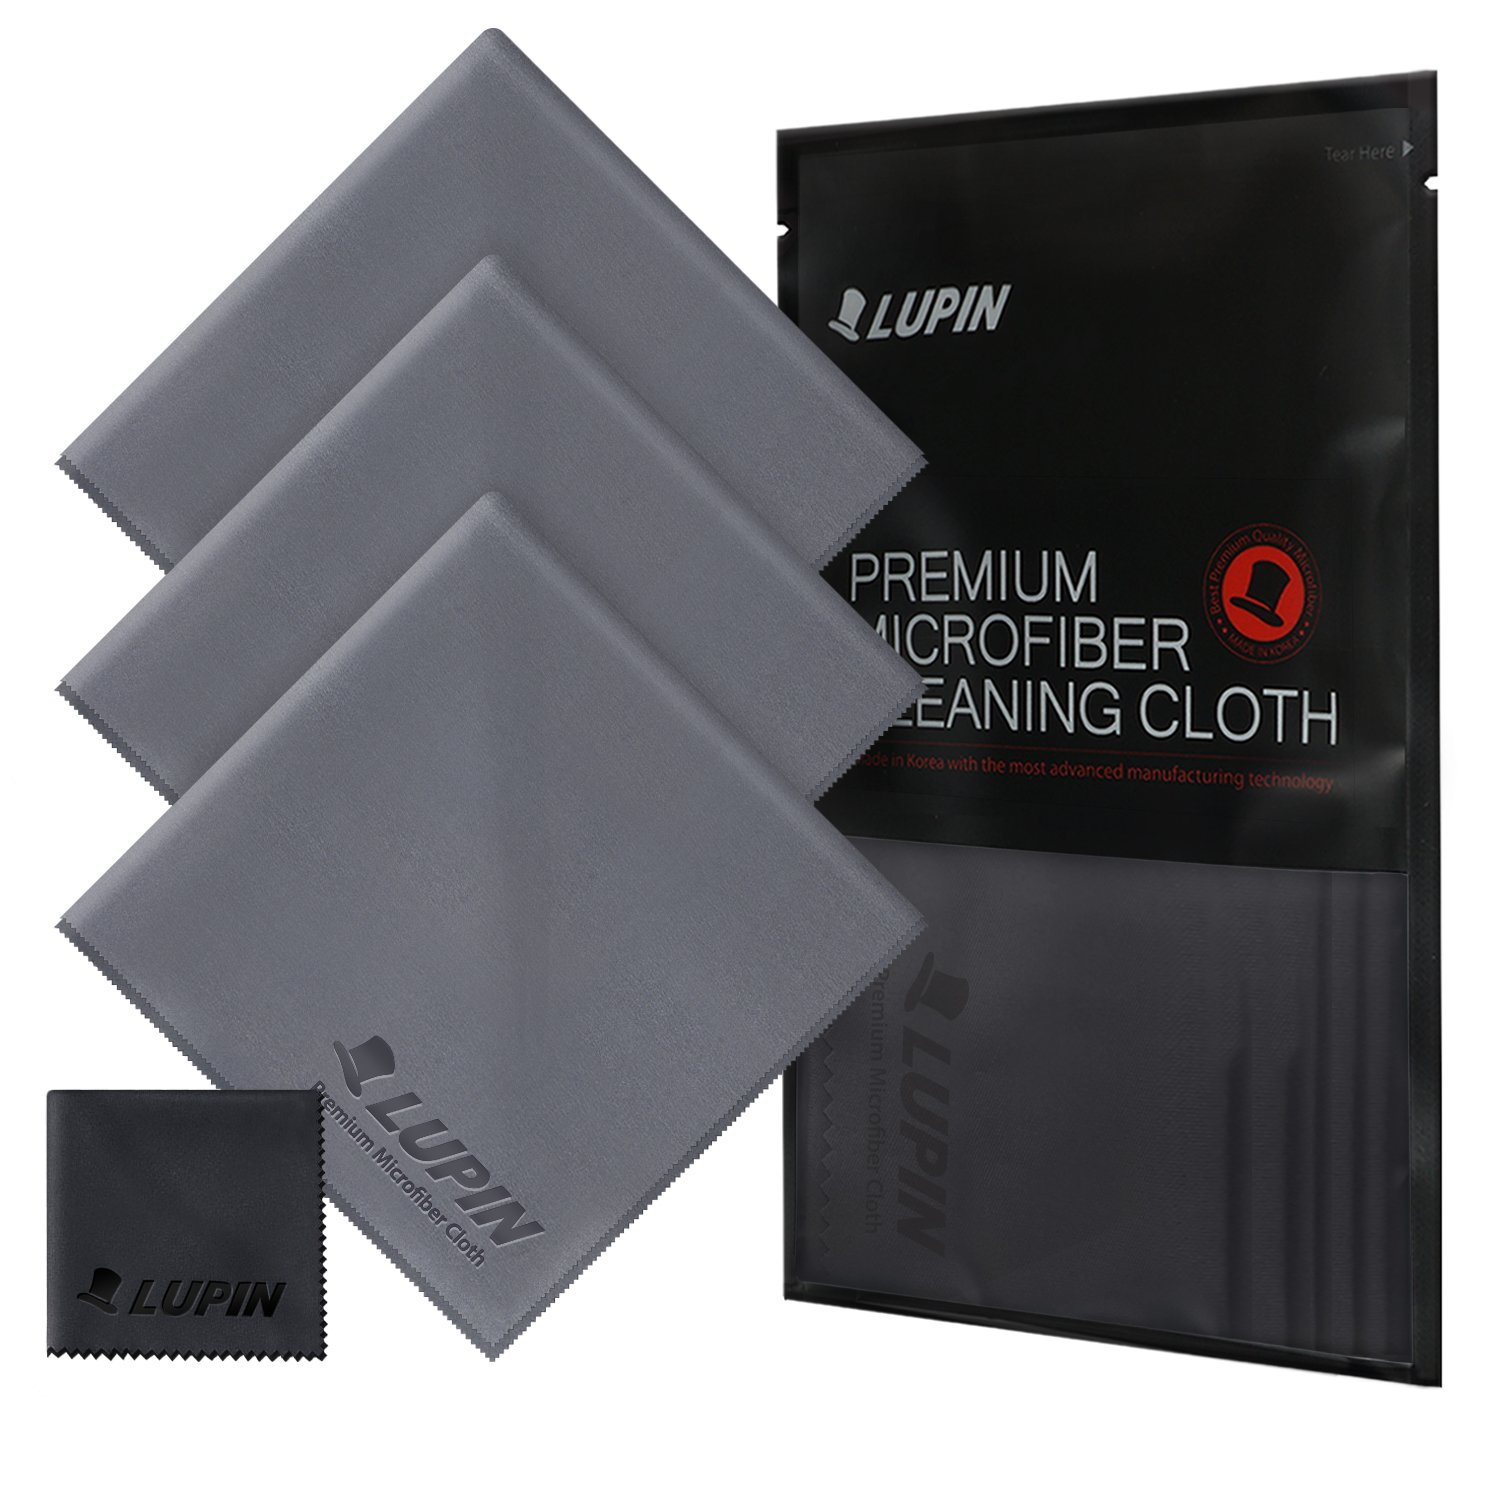 Lupin Microfiber Cleaning Cloths, Large 4 Pack Premium Ultra Lint Polishing Cloth for Cell Phone, Tablets, Laptops, iPad, Glasses, Auto Detail, TV Screens & Other Surfaces - Gray